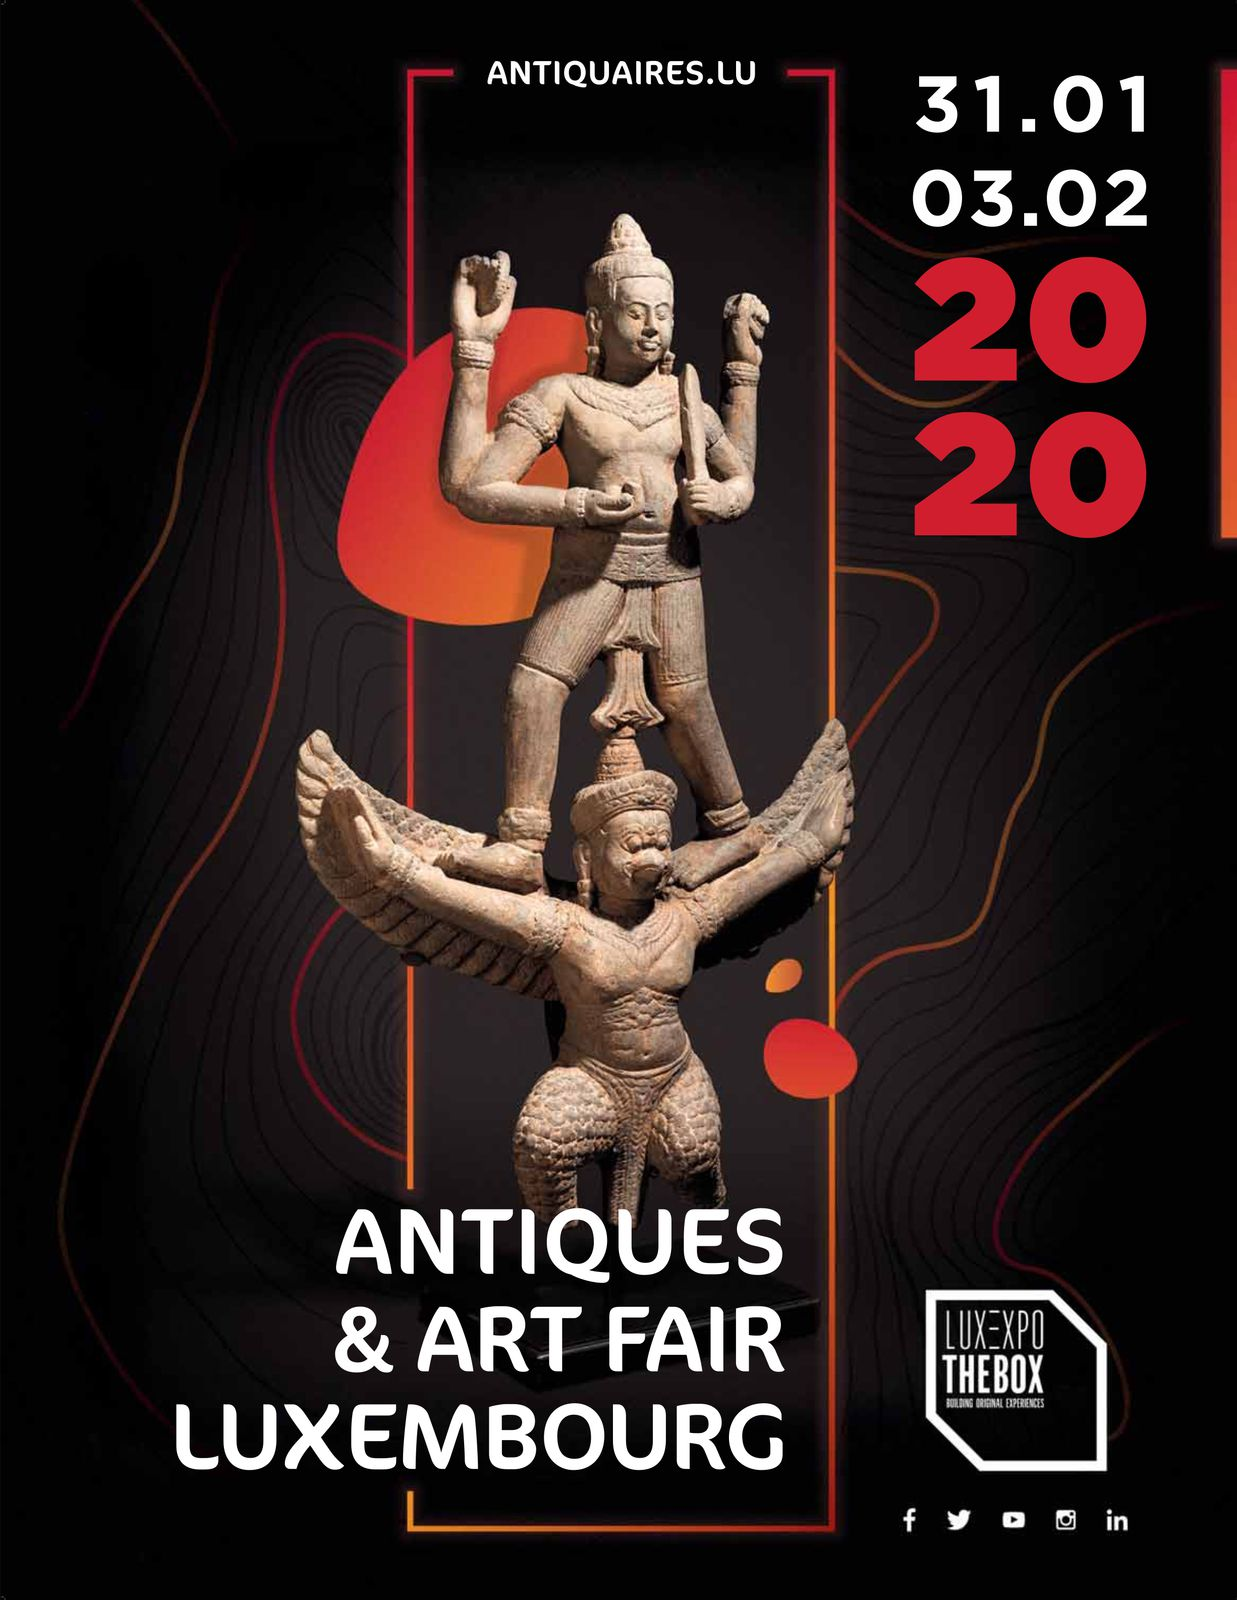 Antiques & Art Fair Luxembourg 2020